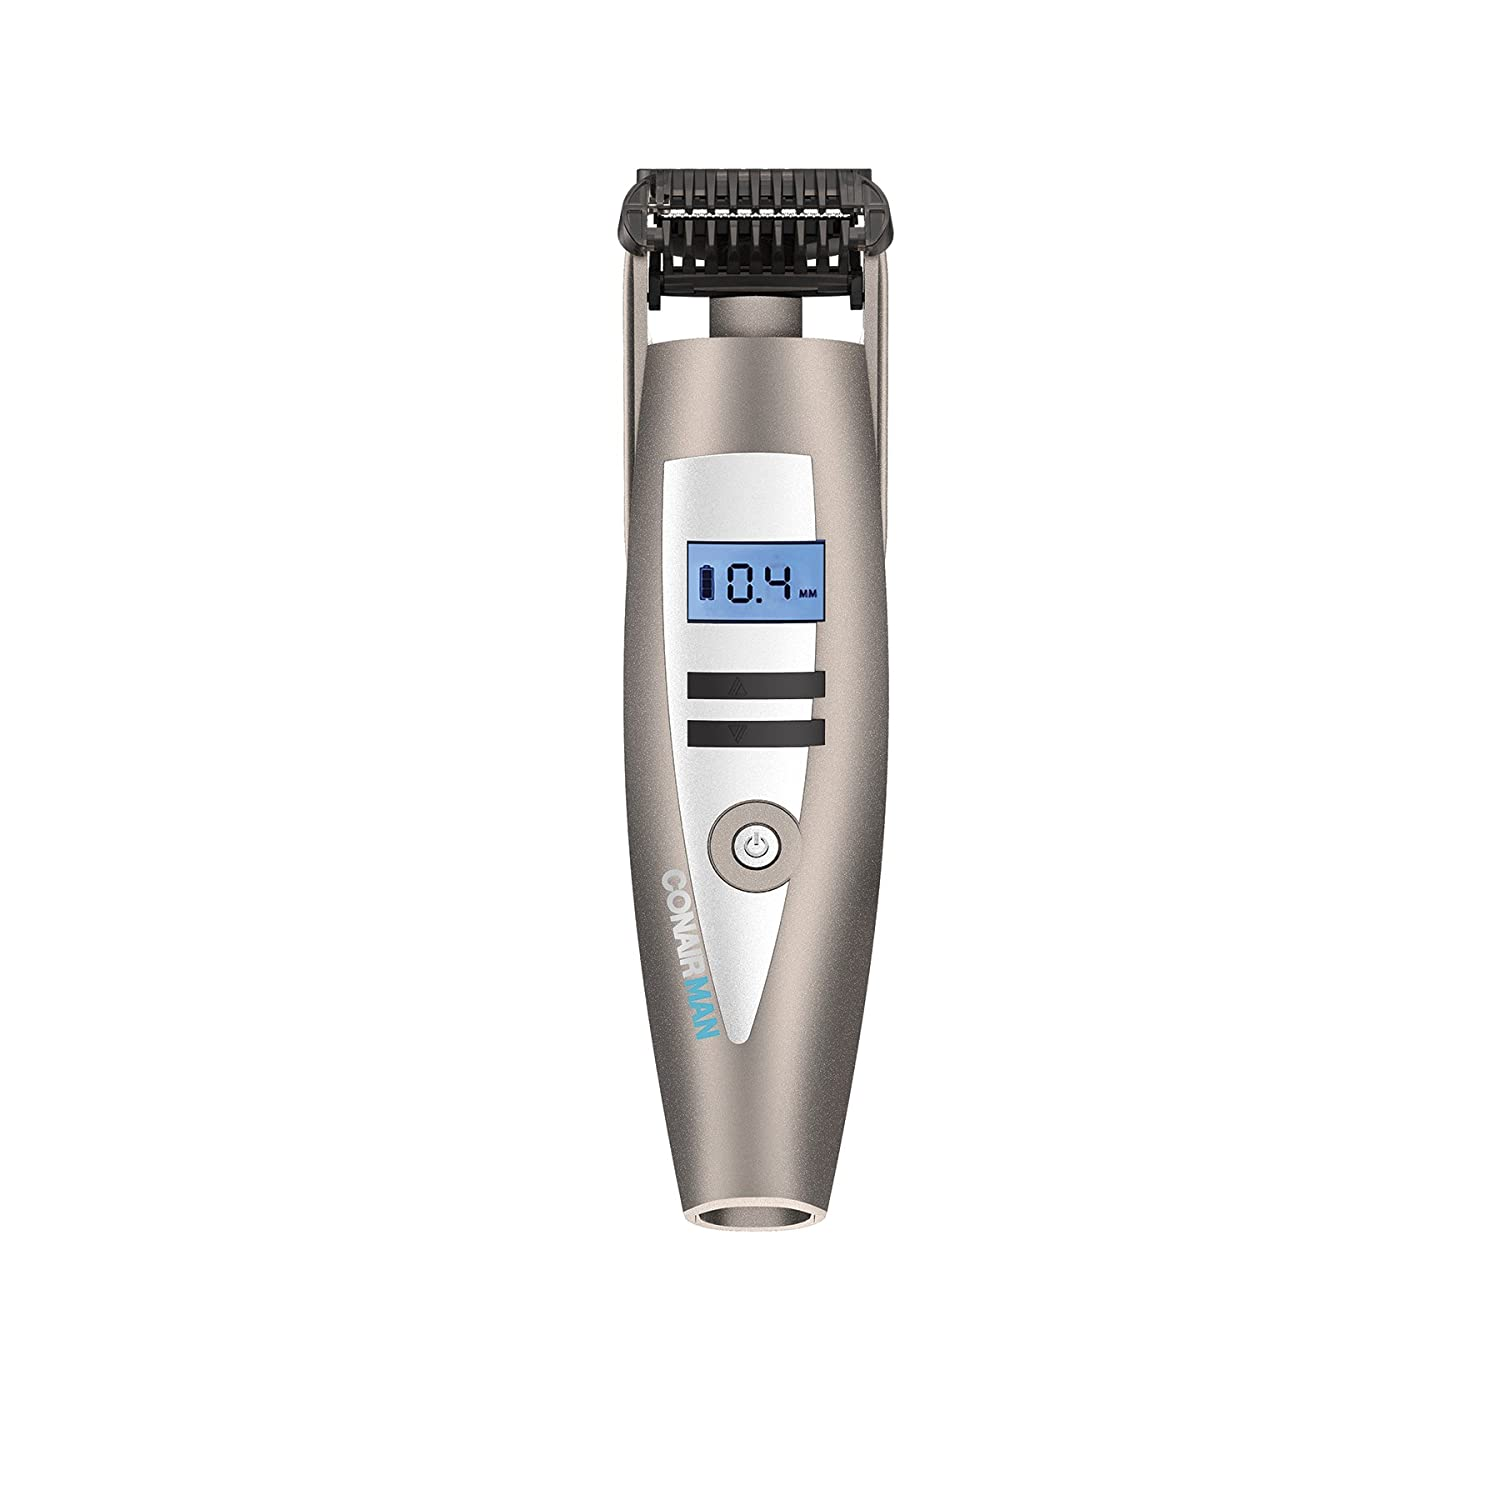 Conair GMT900 iStubble Facial Trimmer, Gray CONAIR(R) GMT900R